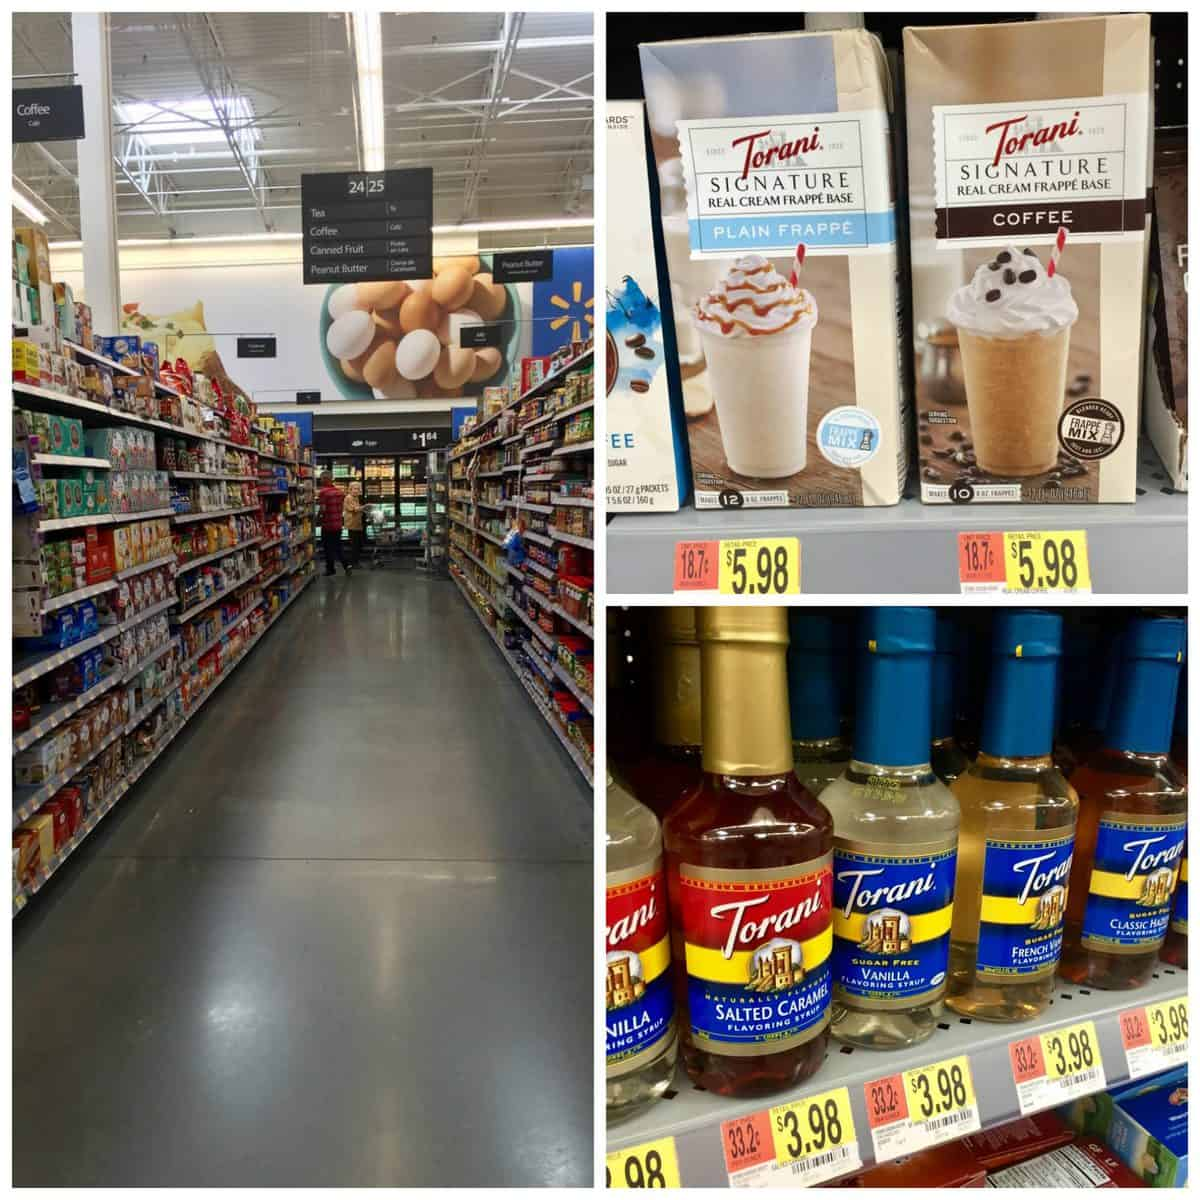 3 photo collage of Torani Real Cream Frappe Mix at Walmart in aisle and on shelf.